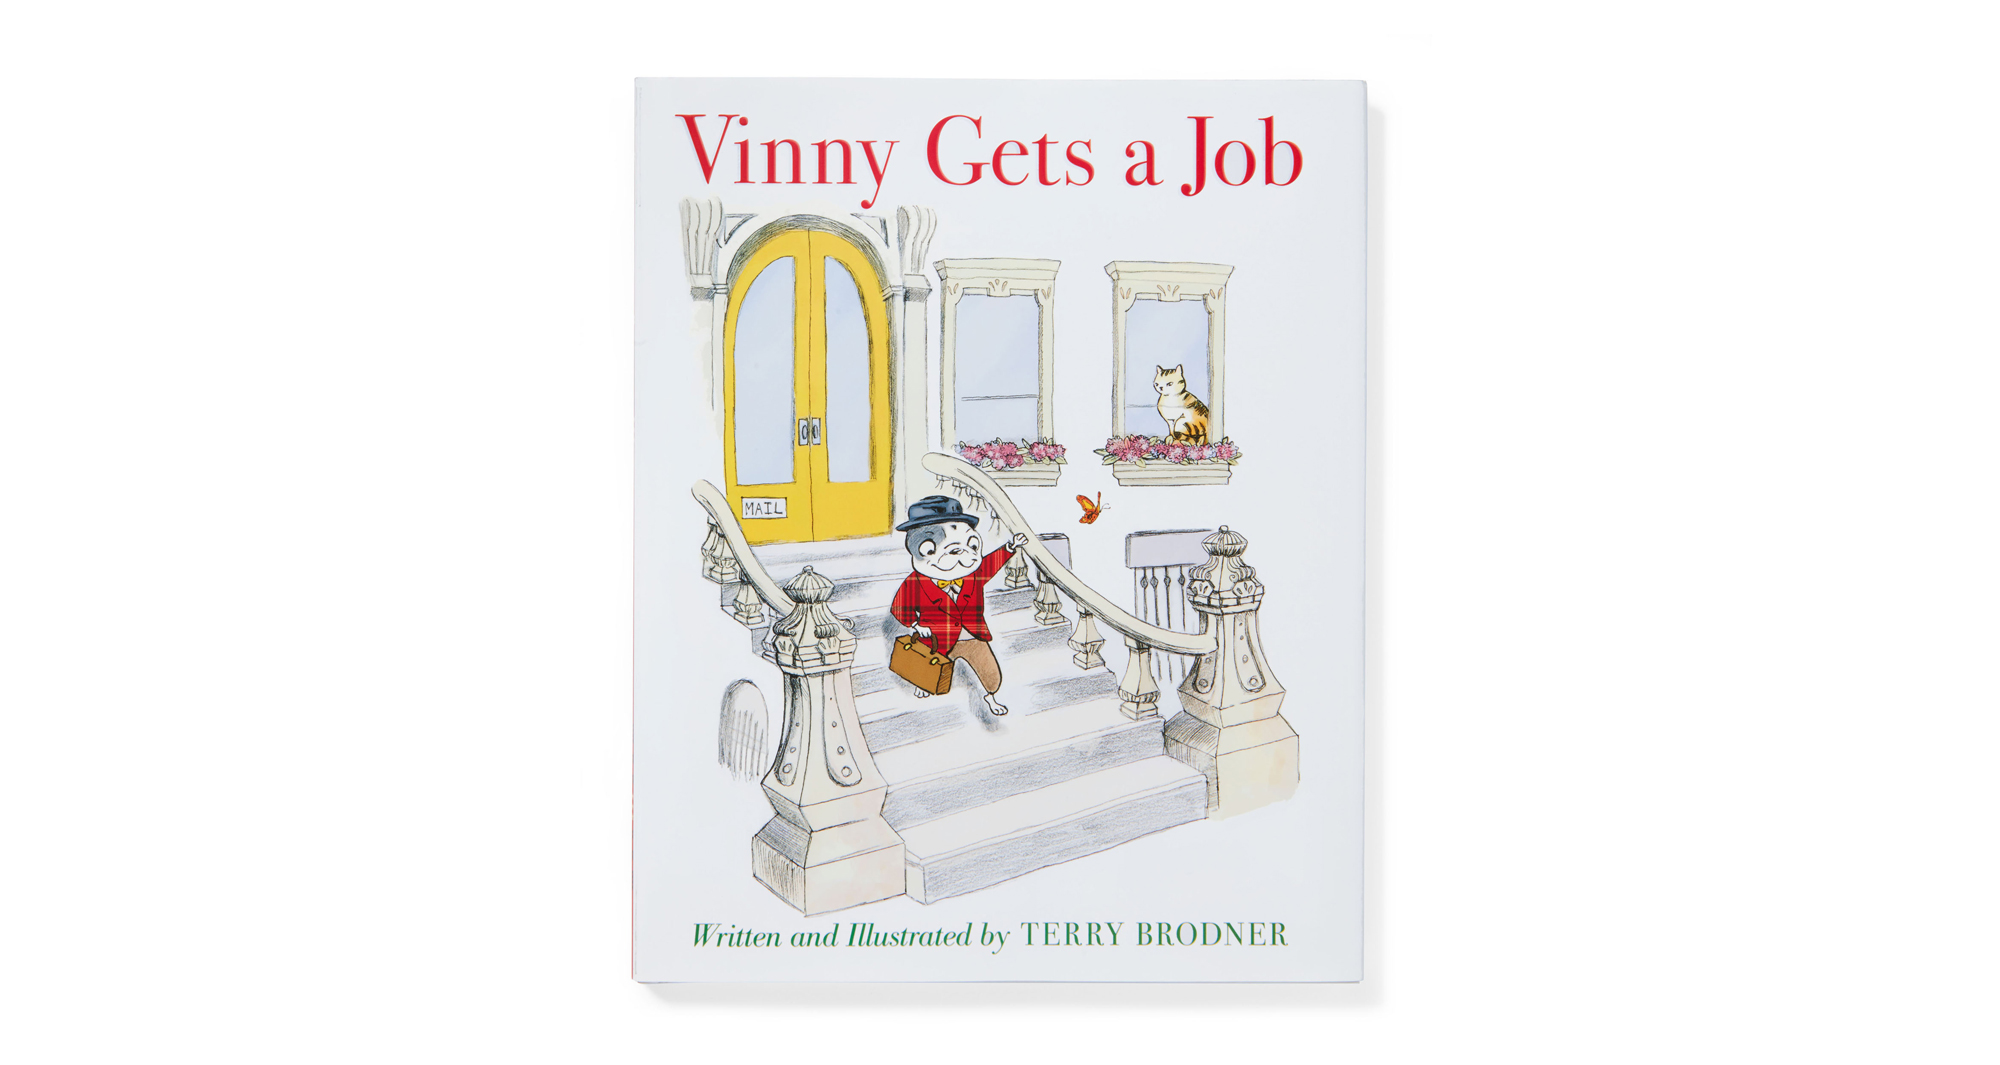 Vinny Gets a Job book cover